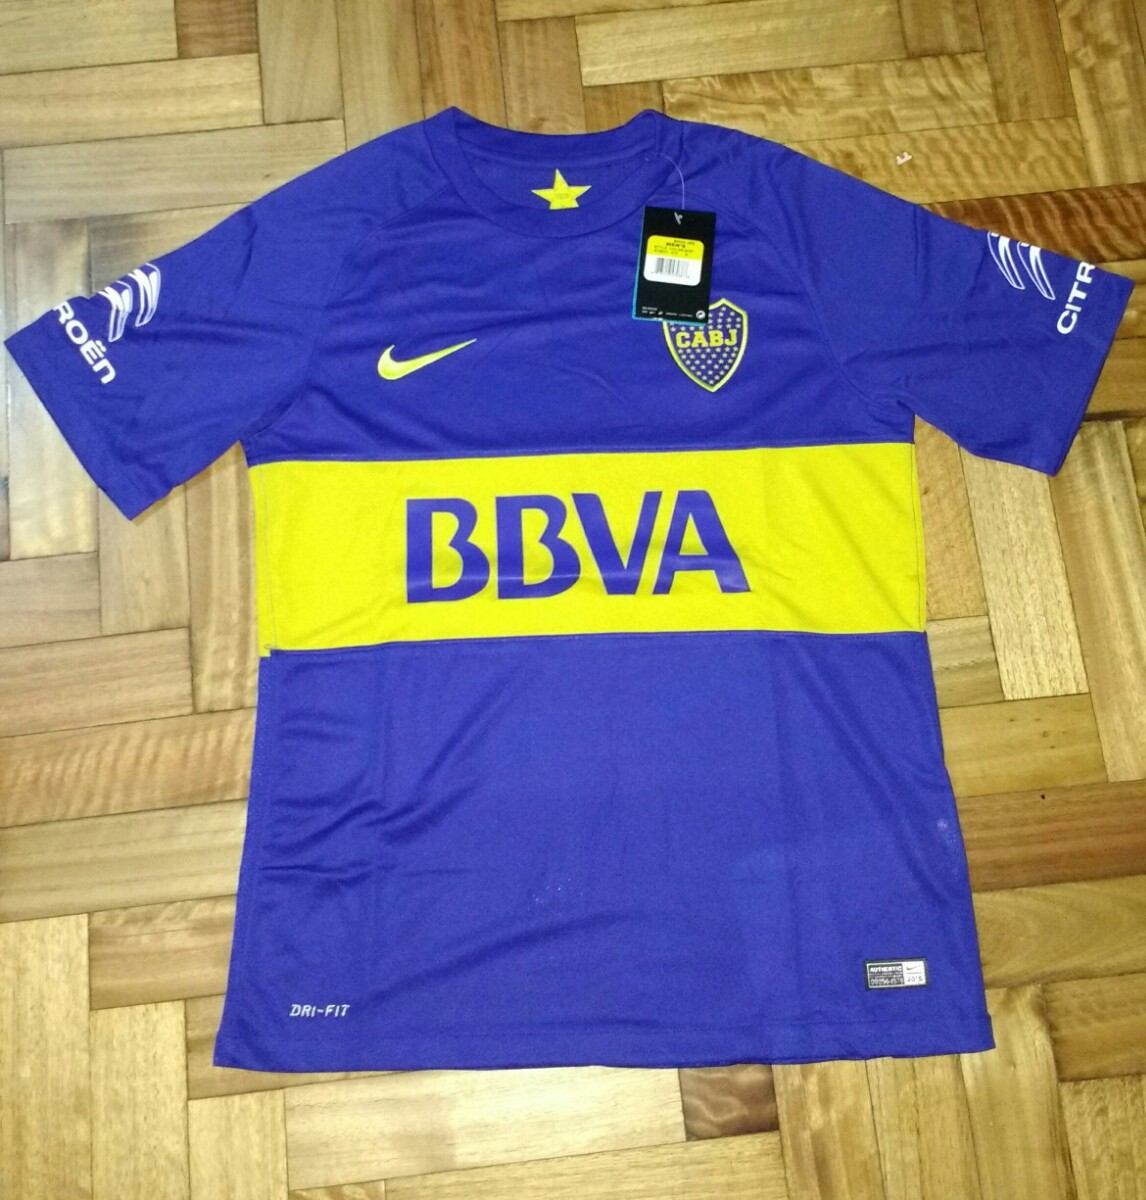 camiseta boca juniors titular 2016. modelo stadium! Cargando zoom. c667d027ddded